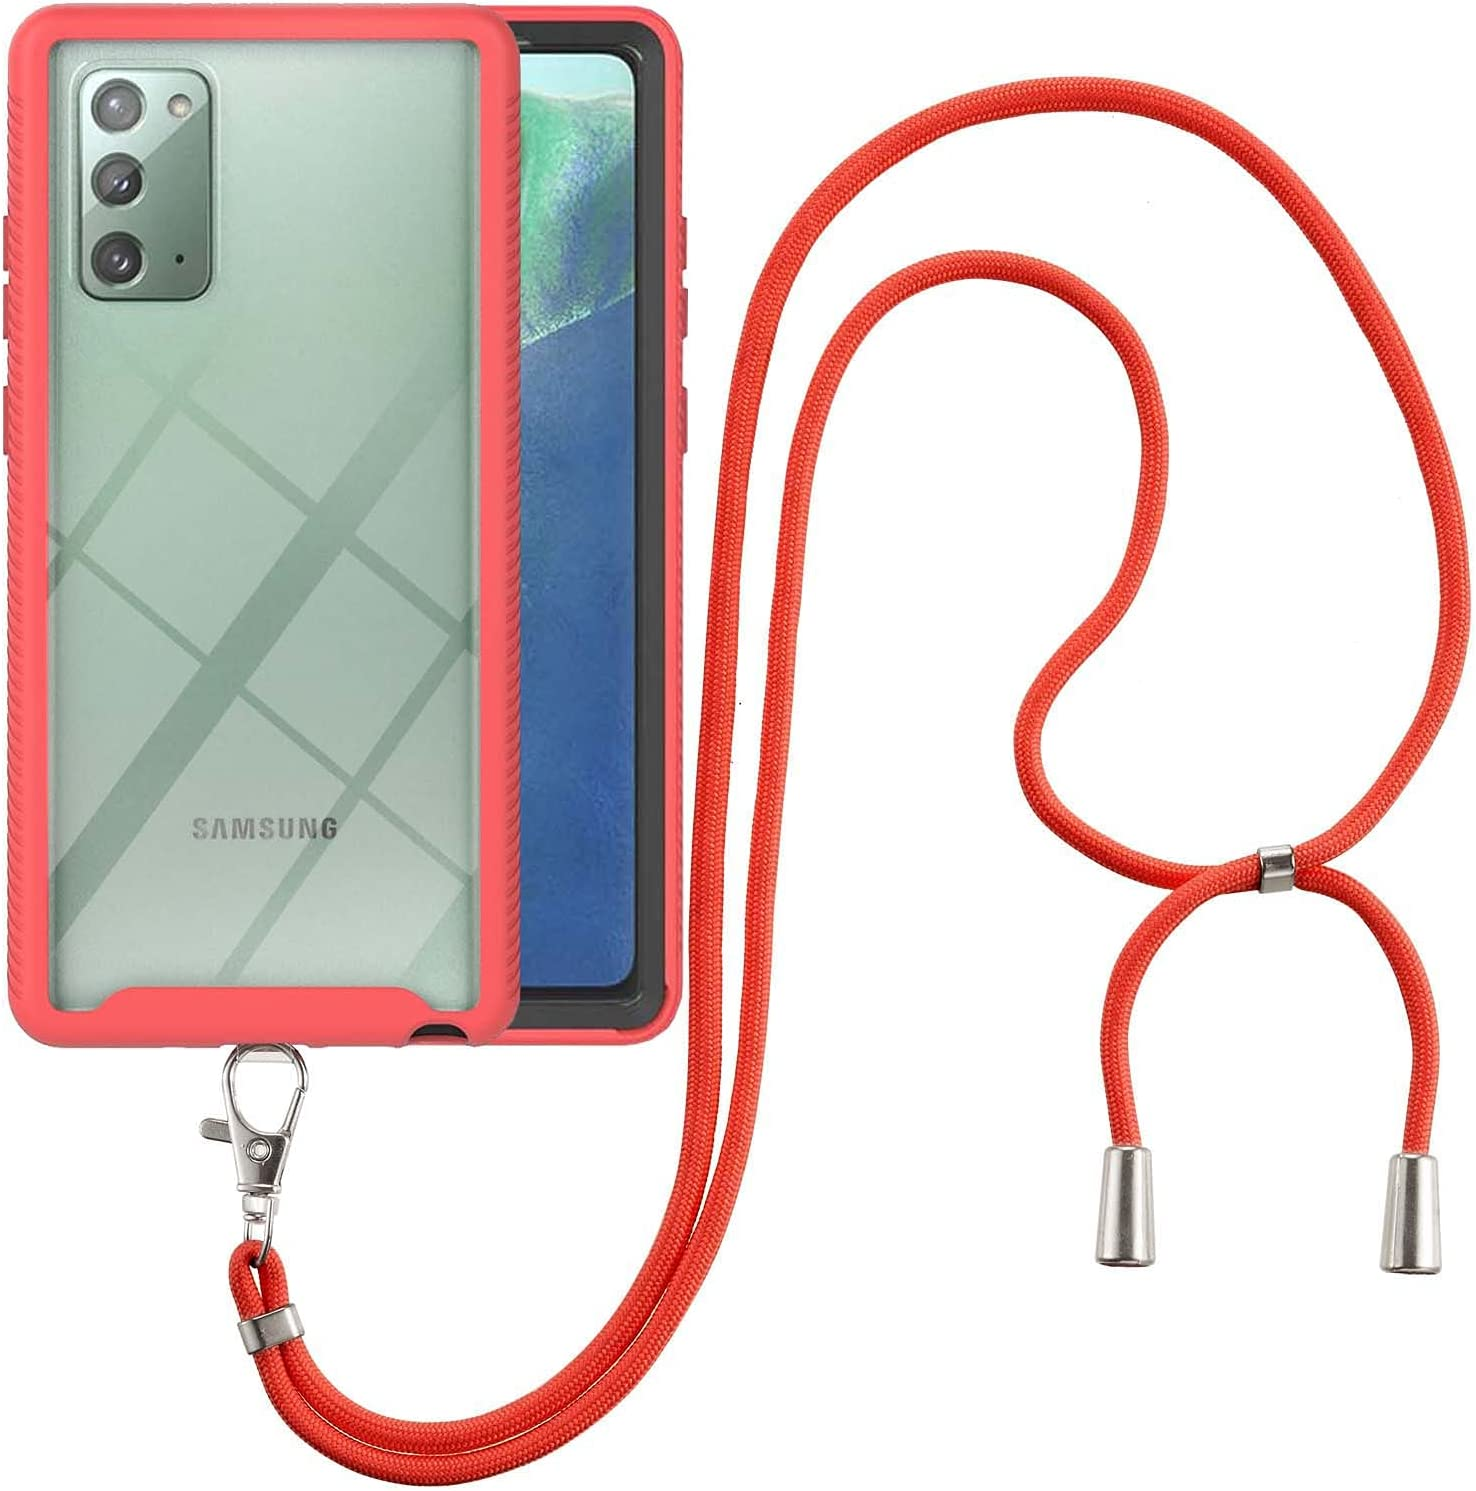 Samsung Note 20 Case, EabHulie Transparent Back No-Slip Bumper with Adjustable Crossbody Lanyard Strap Case, Shockproof Full Body Protection Cover for Samsung Galaxy Note 20 Red